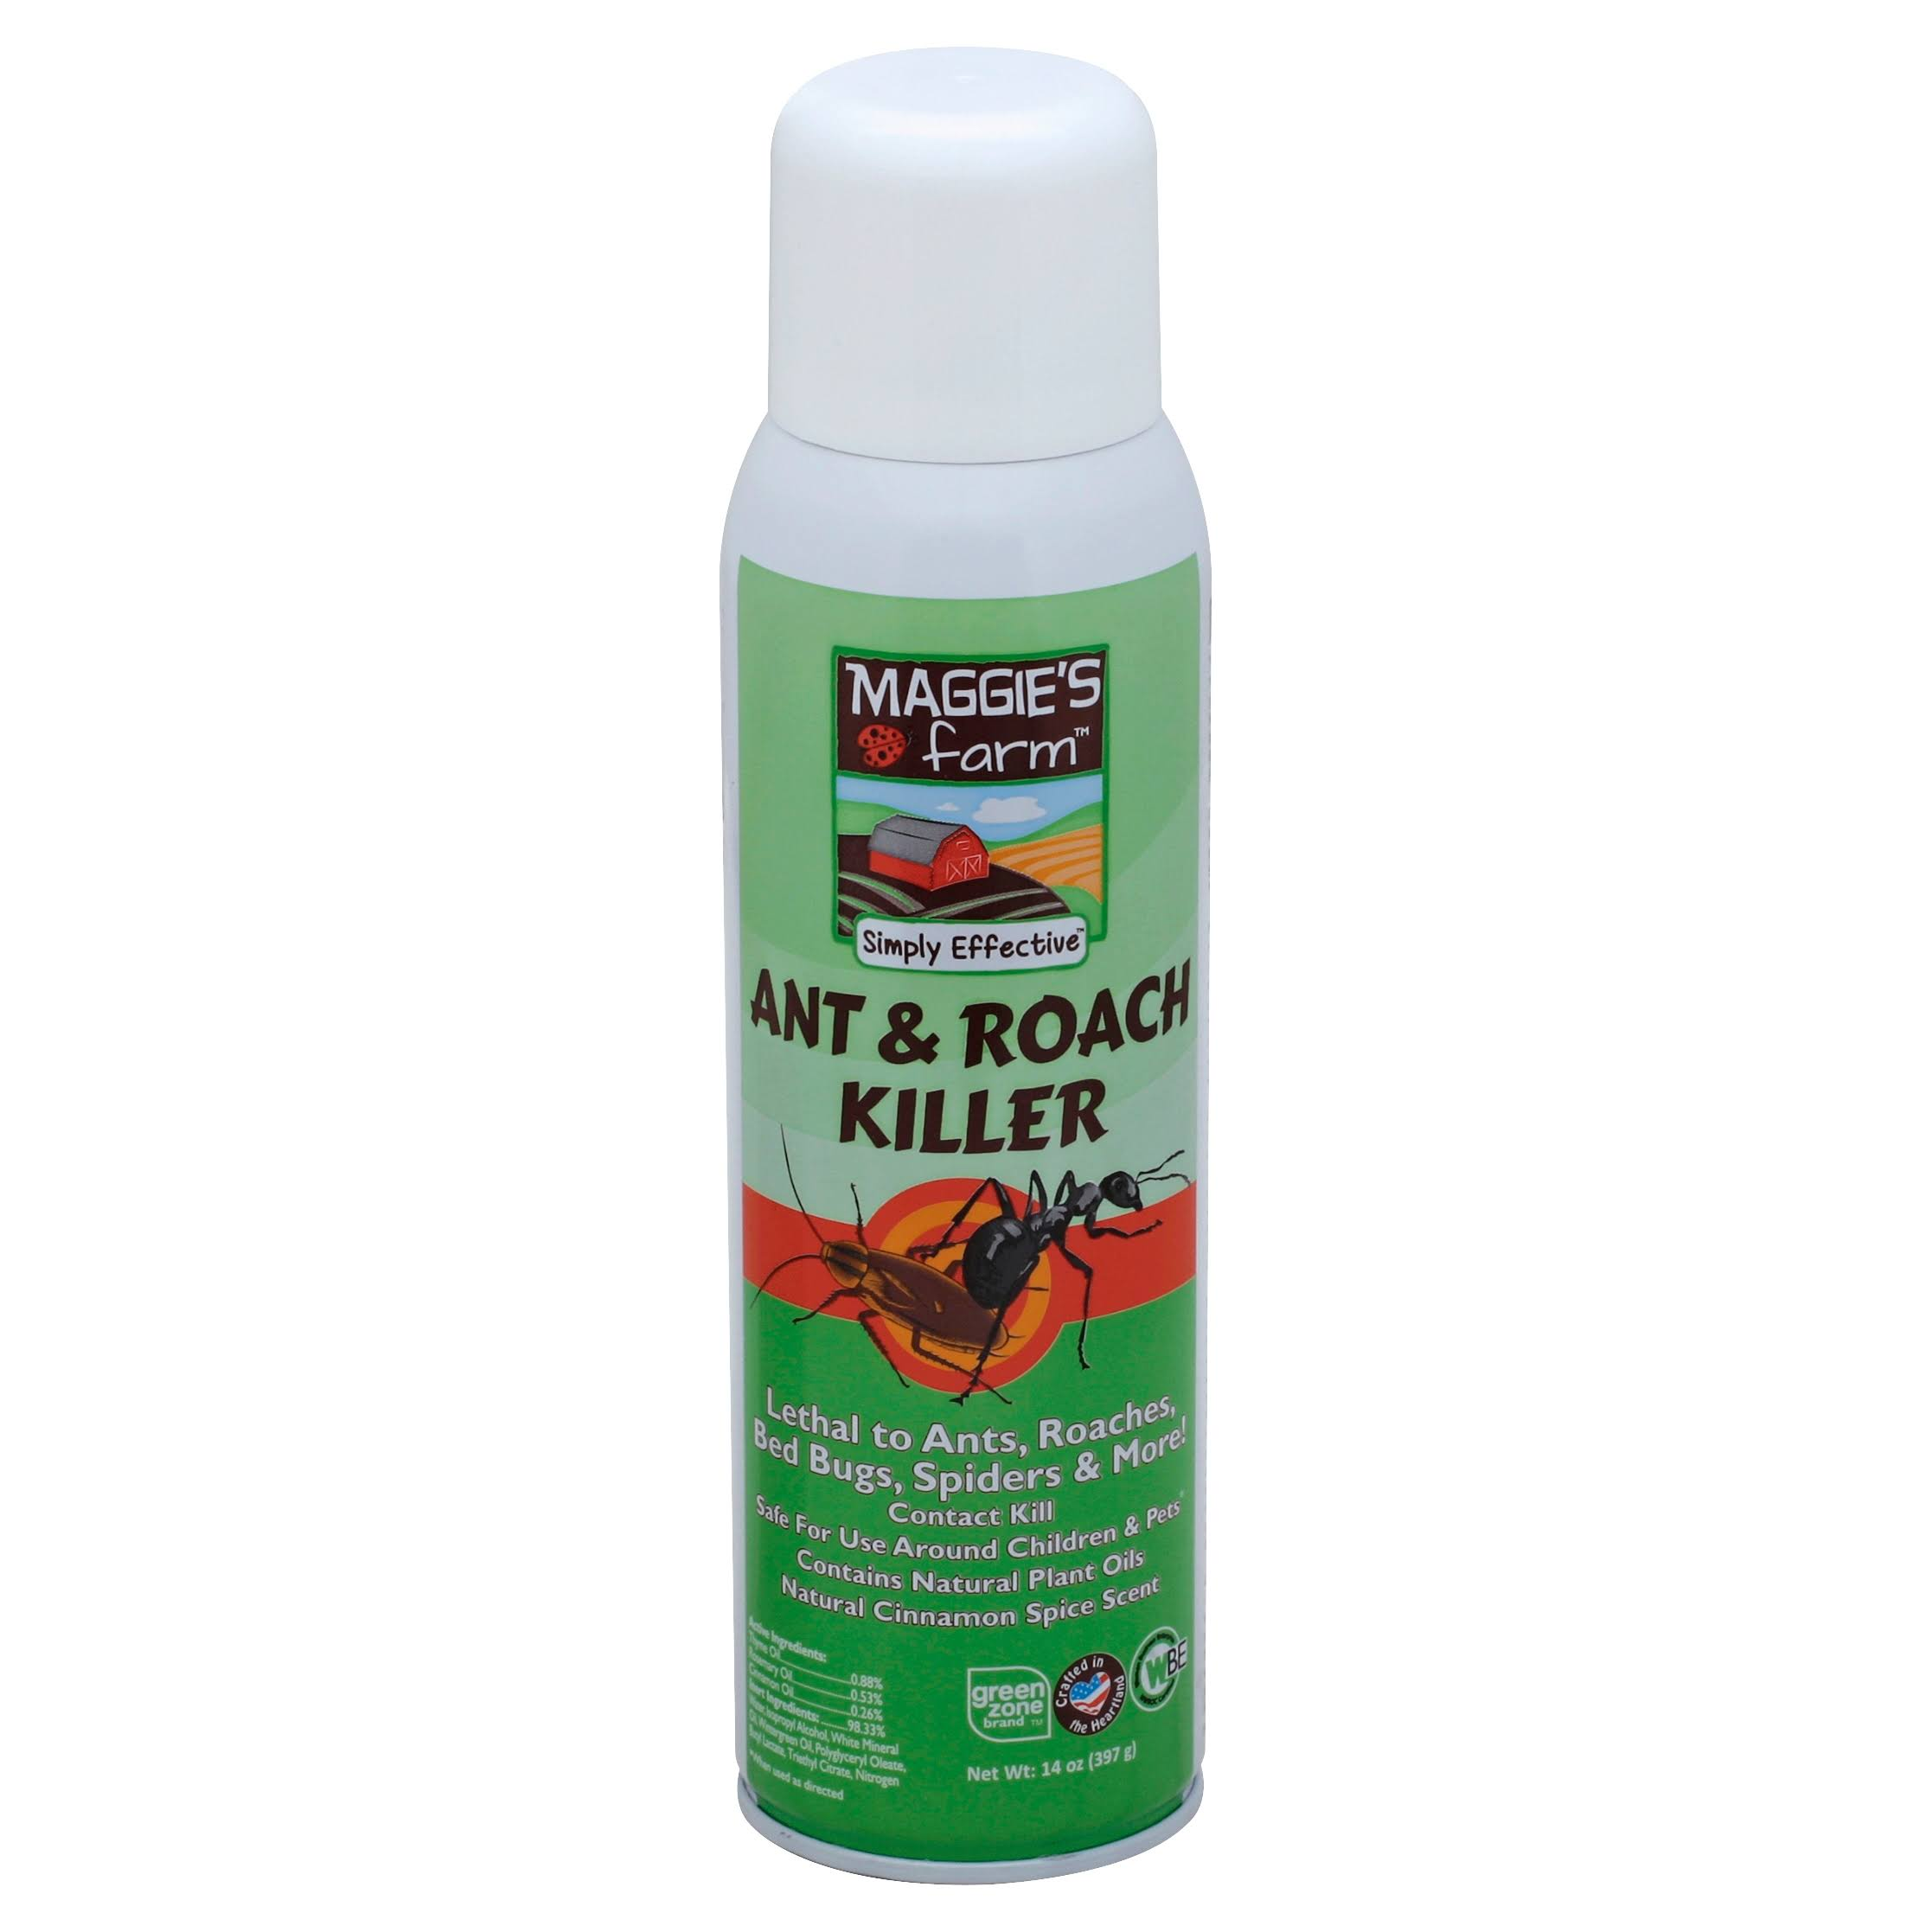 Maggie's Farm Ant and Roach Killer - 14oz